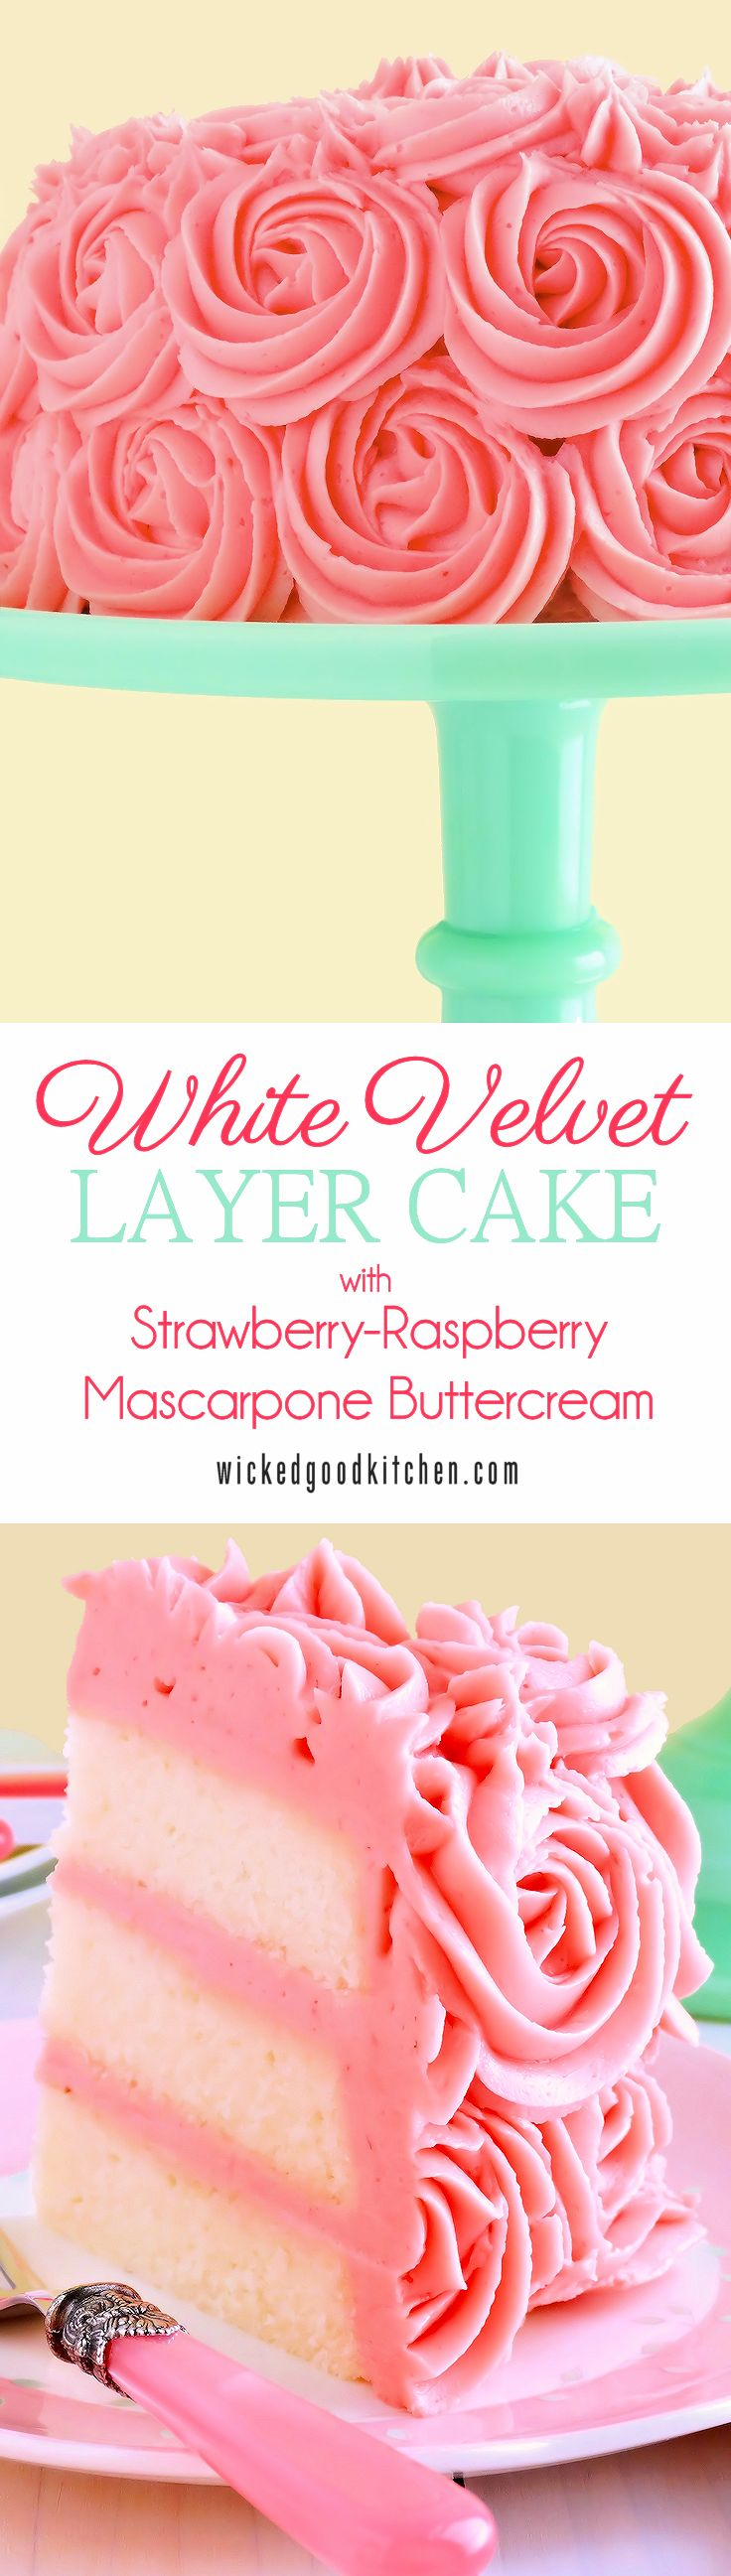 Moist, tender white cake reminiscent of its buttermilk cake cousin, Red Velvet Cake, our White Velvet Layer Cake is flavored with pure almond extract and a hint of vanilla. It is iced with a truly extraordinary frosting that tastes just like strawberry-raspberry cheesecake! @wickedgoodkitch